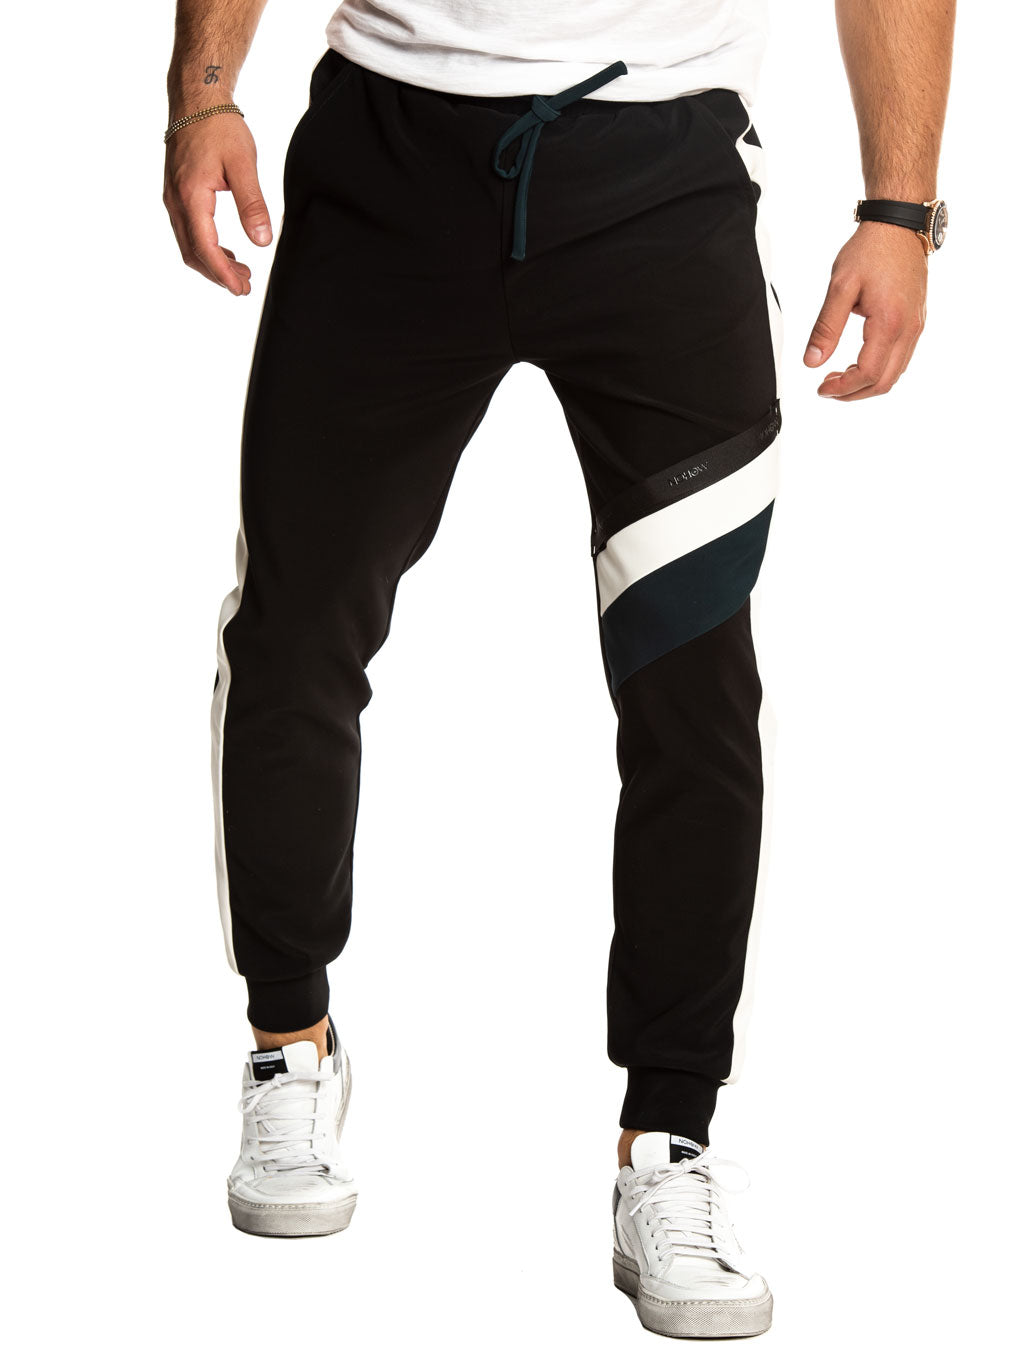 FINNEAS TRACK PANTS IN BLACK